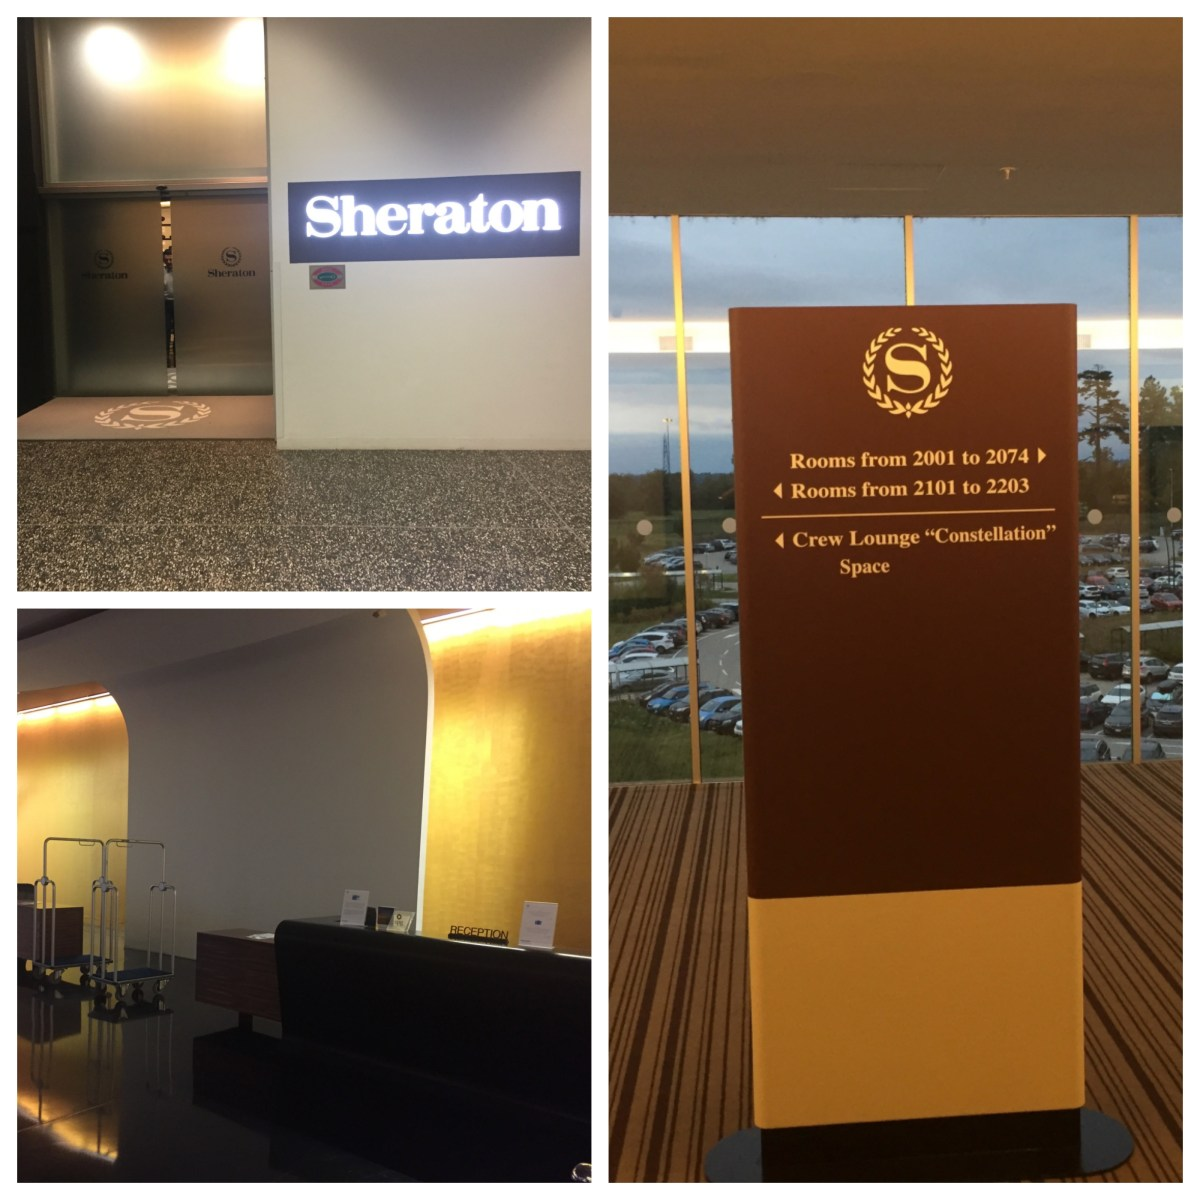 REVIEW: Sheraton, Milan Malpensa Airport